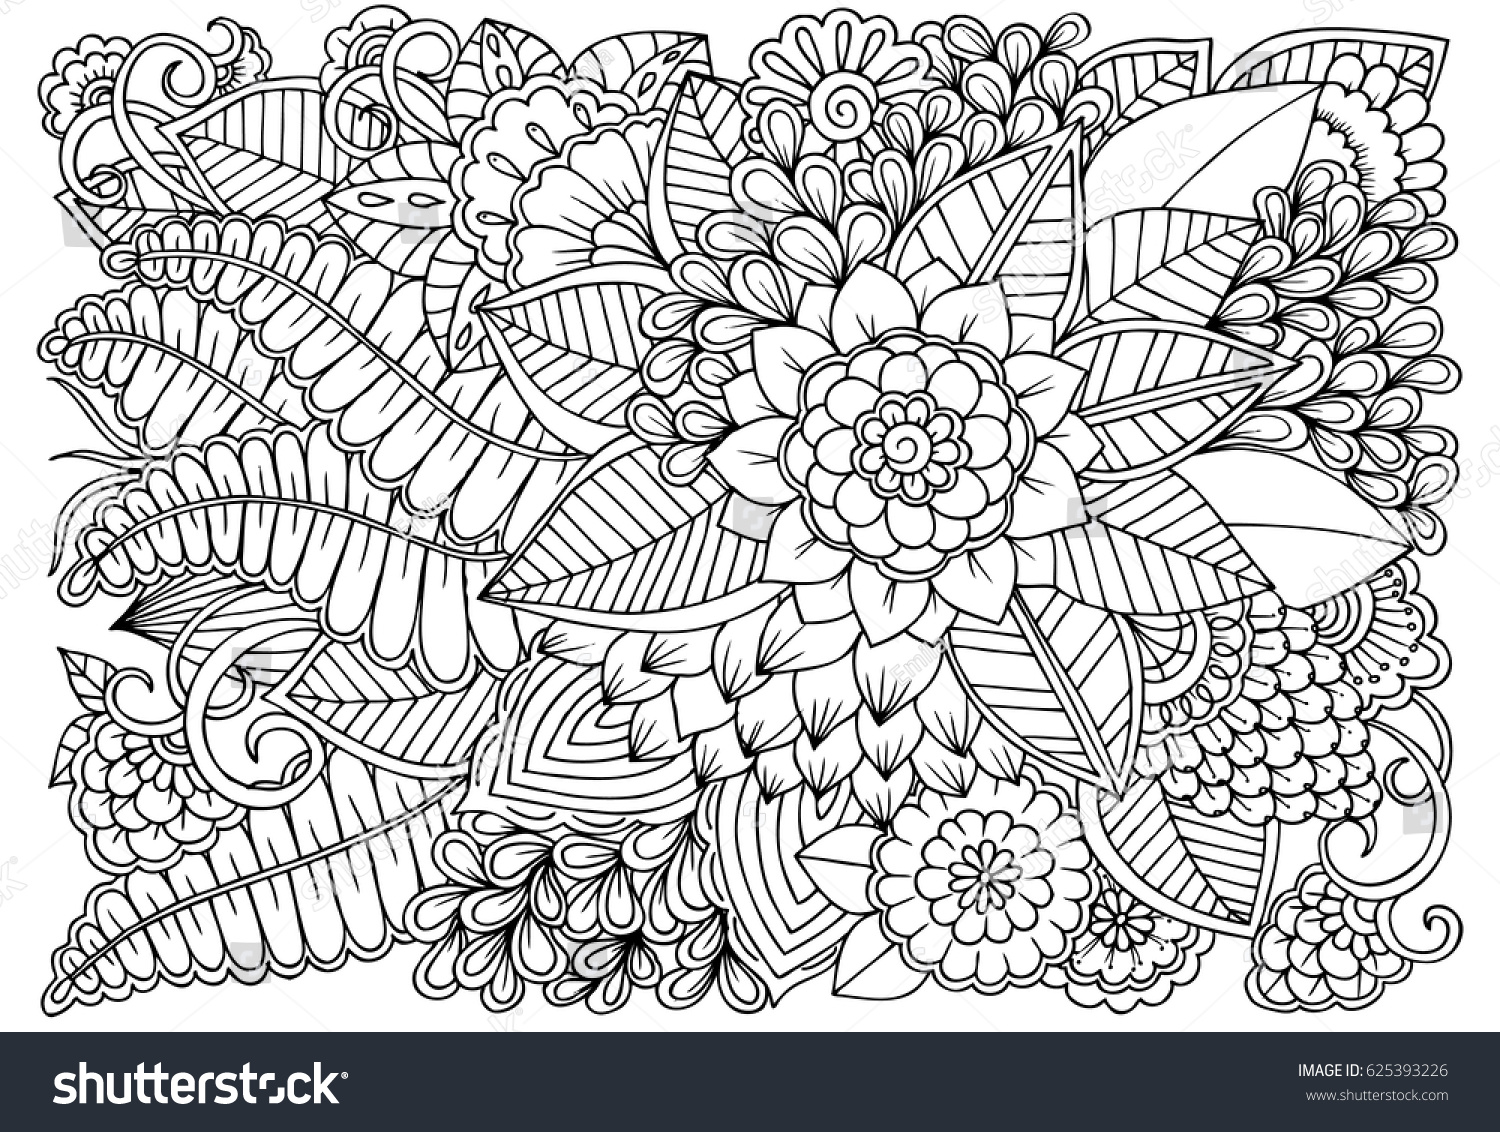 black white flower pattern coloring stock vector 625393226